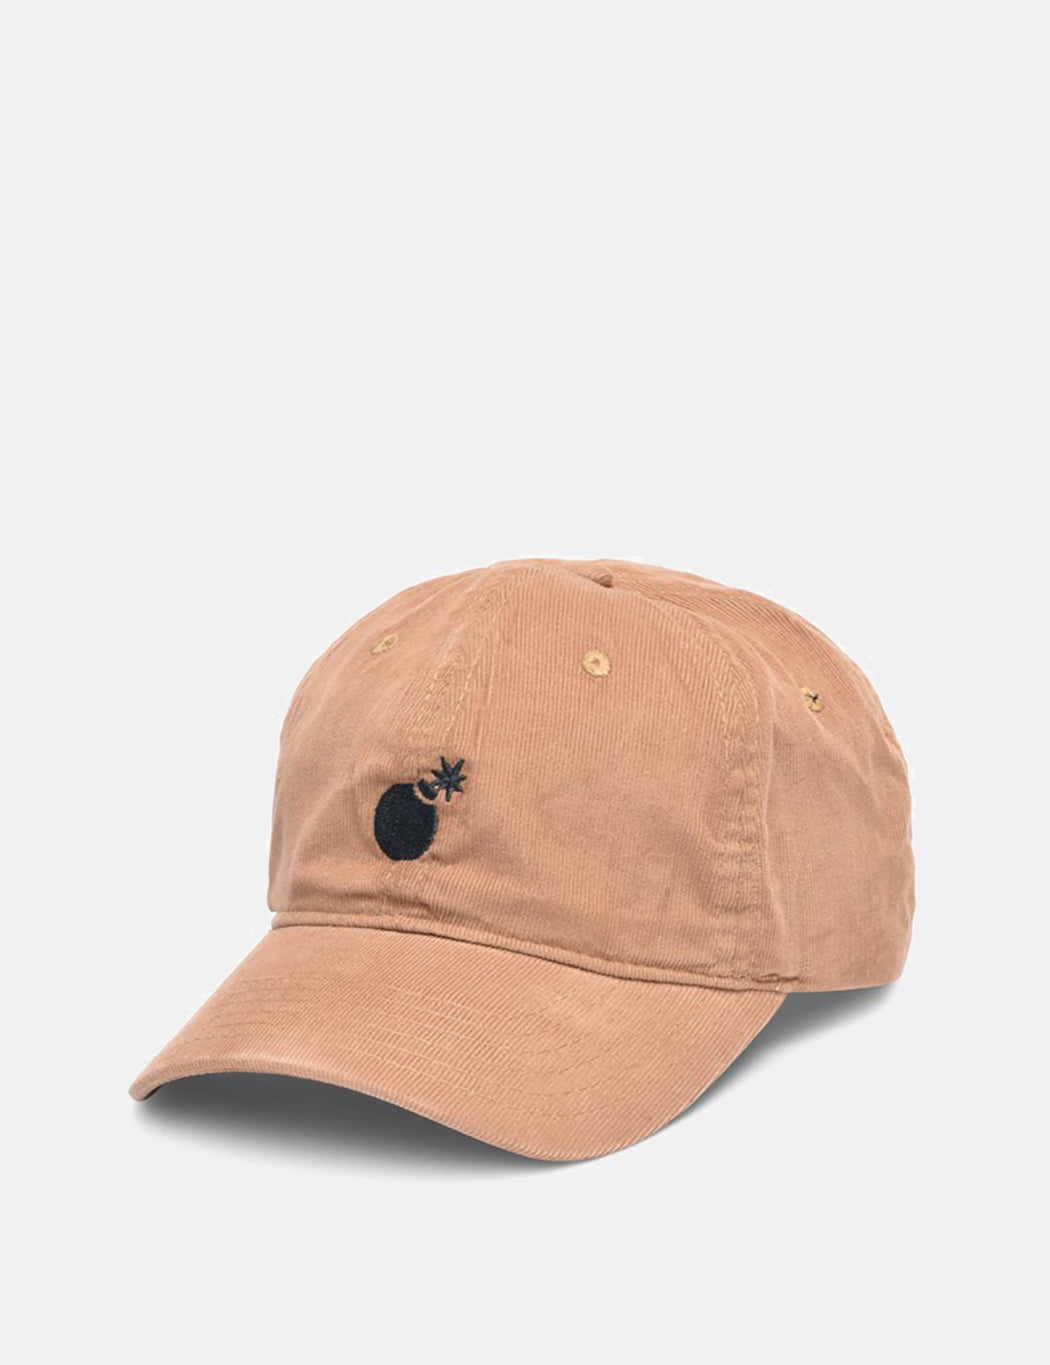 753314b2a7b40 The Hundreds Solid Bomb Dad Cap - Khaki Brown